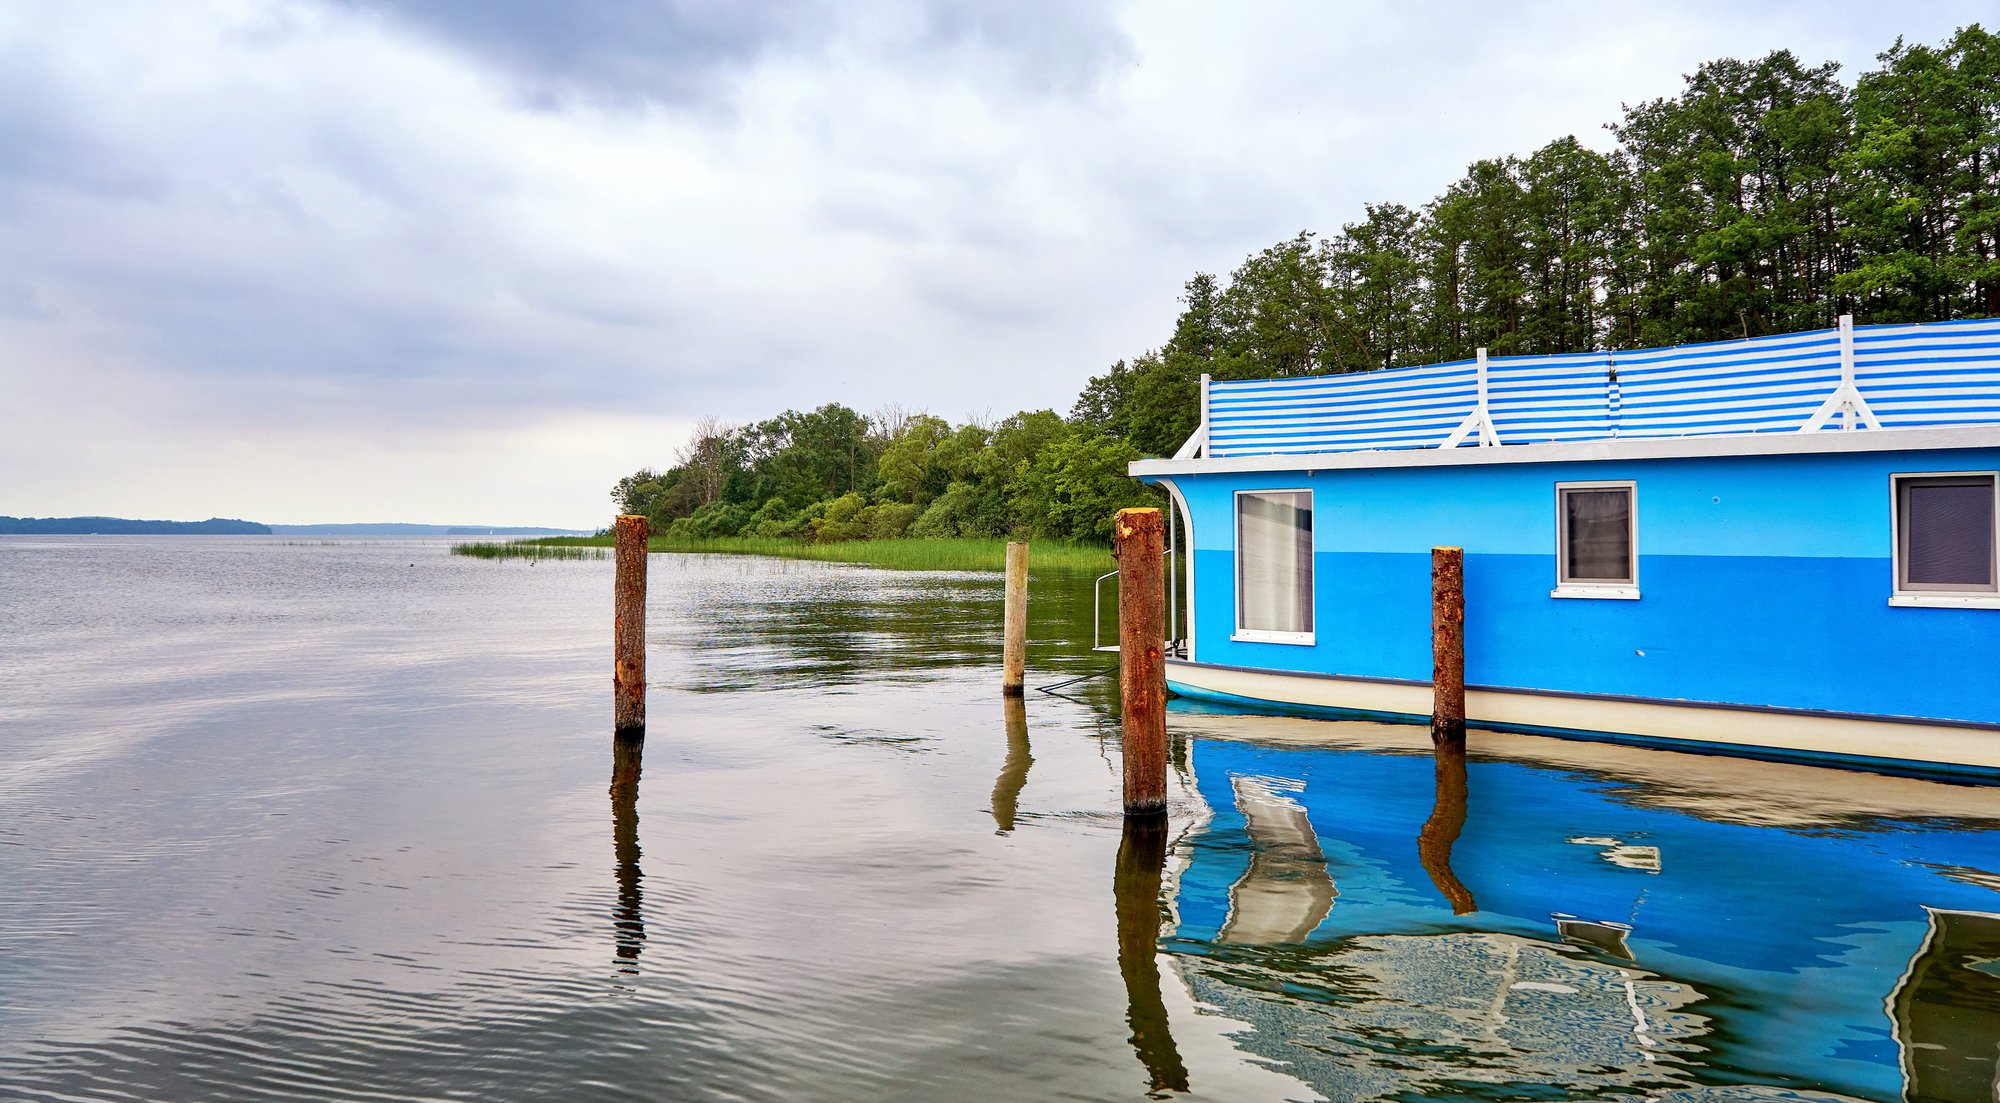 15 Questions You Should Ask Before Ing A Houseboat